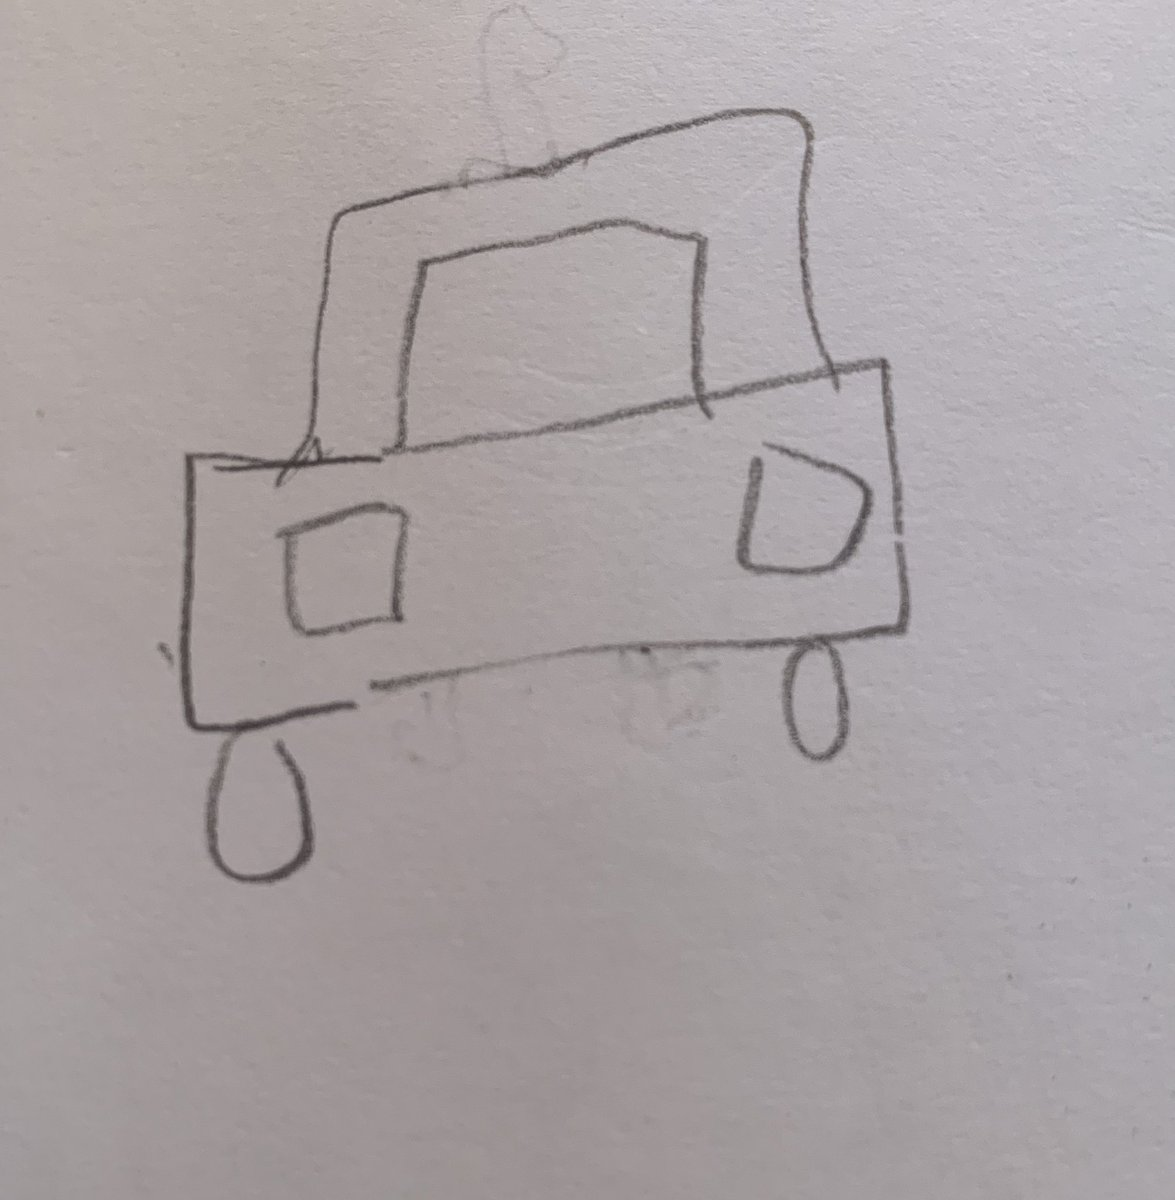 Trying to remember the make & model of the car I saw that looked like John Slattery.   @DennisCahlo just drew the back from memory and he's not helpful. https://t.co/5e0rVzsEBF